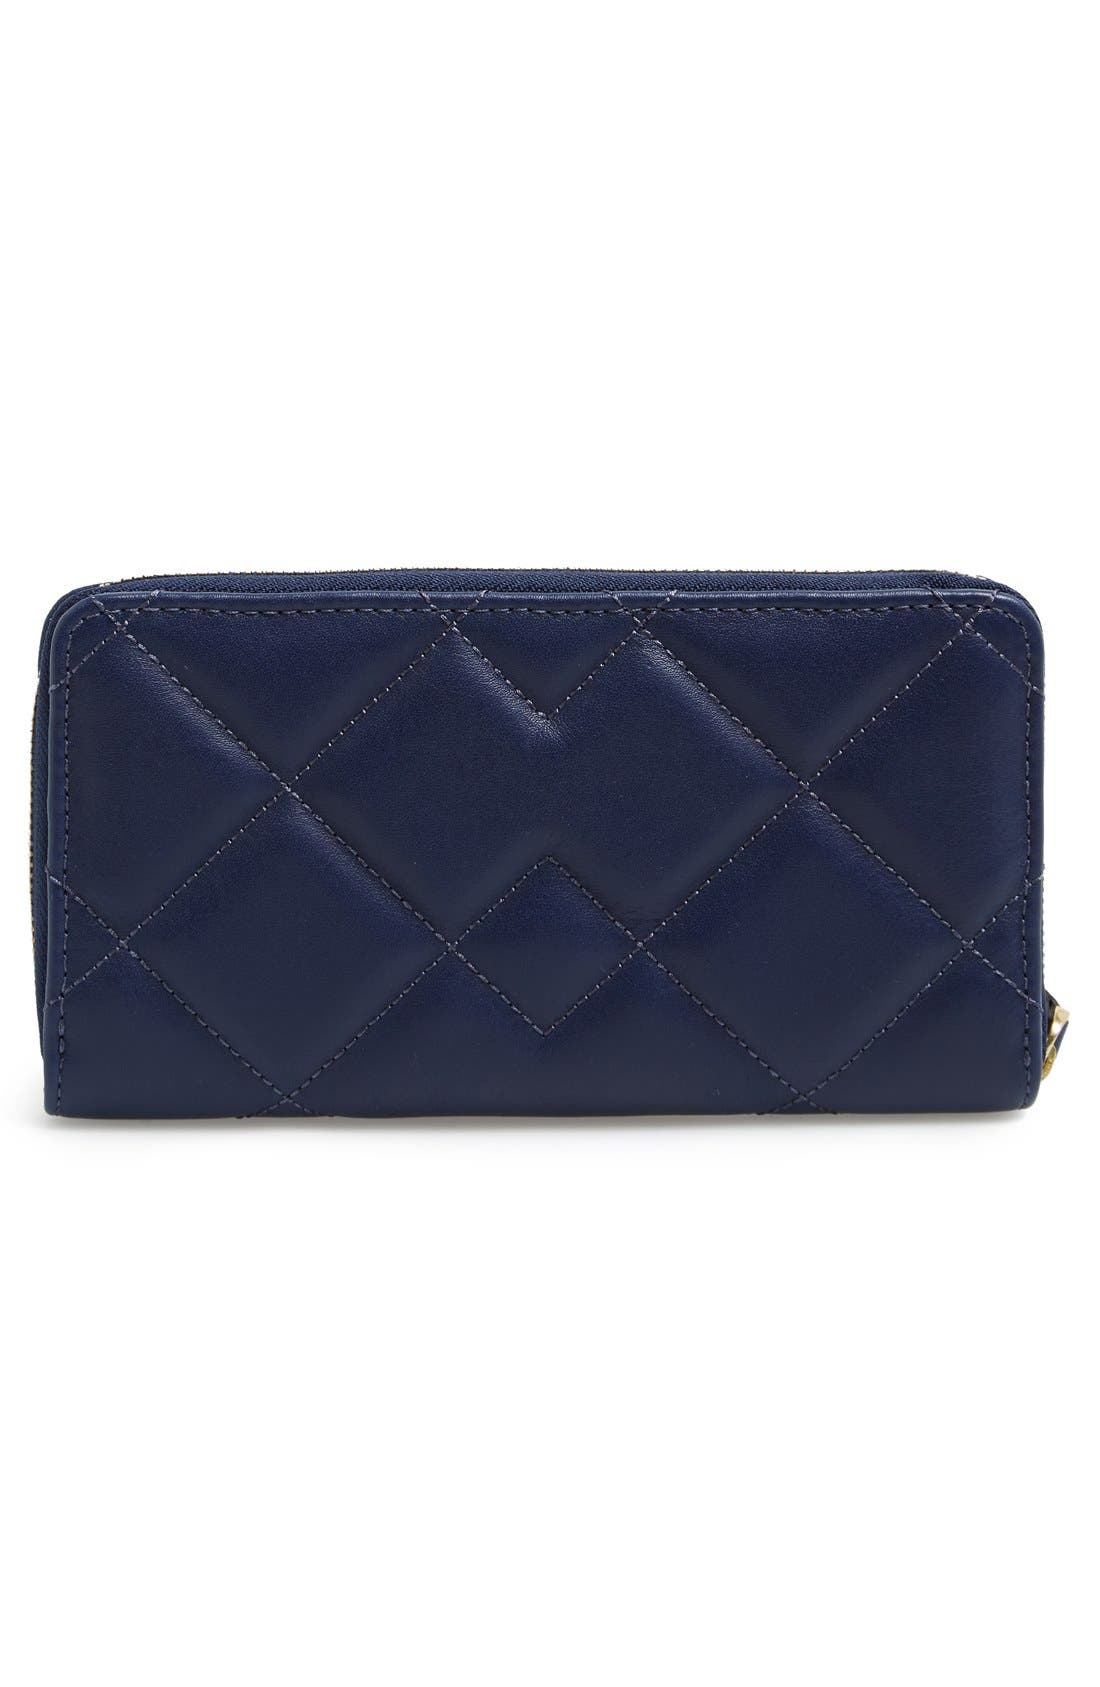 Alternate Image 3  - MARC BY MARC JACOBS 'Quilty Vertical Zippy' Leather Wallet